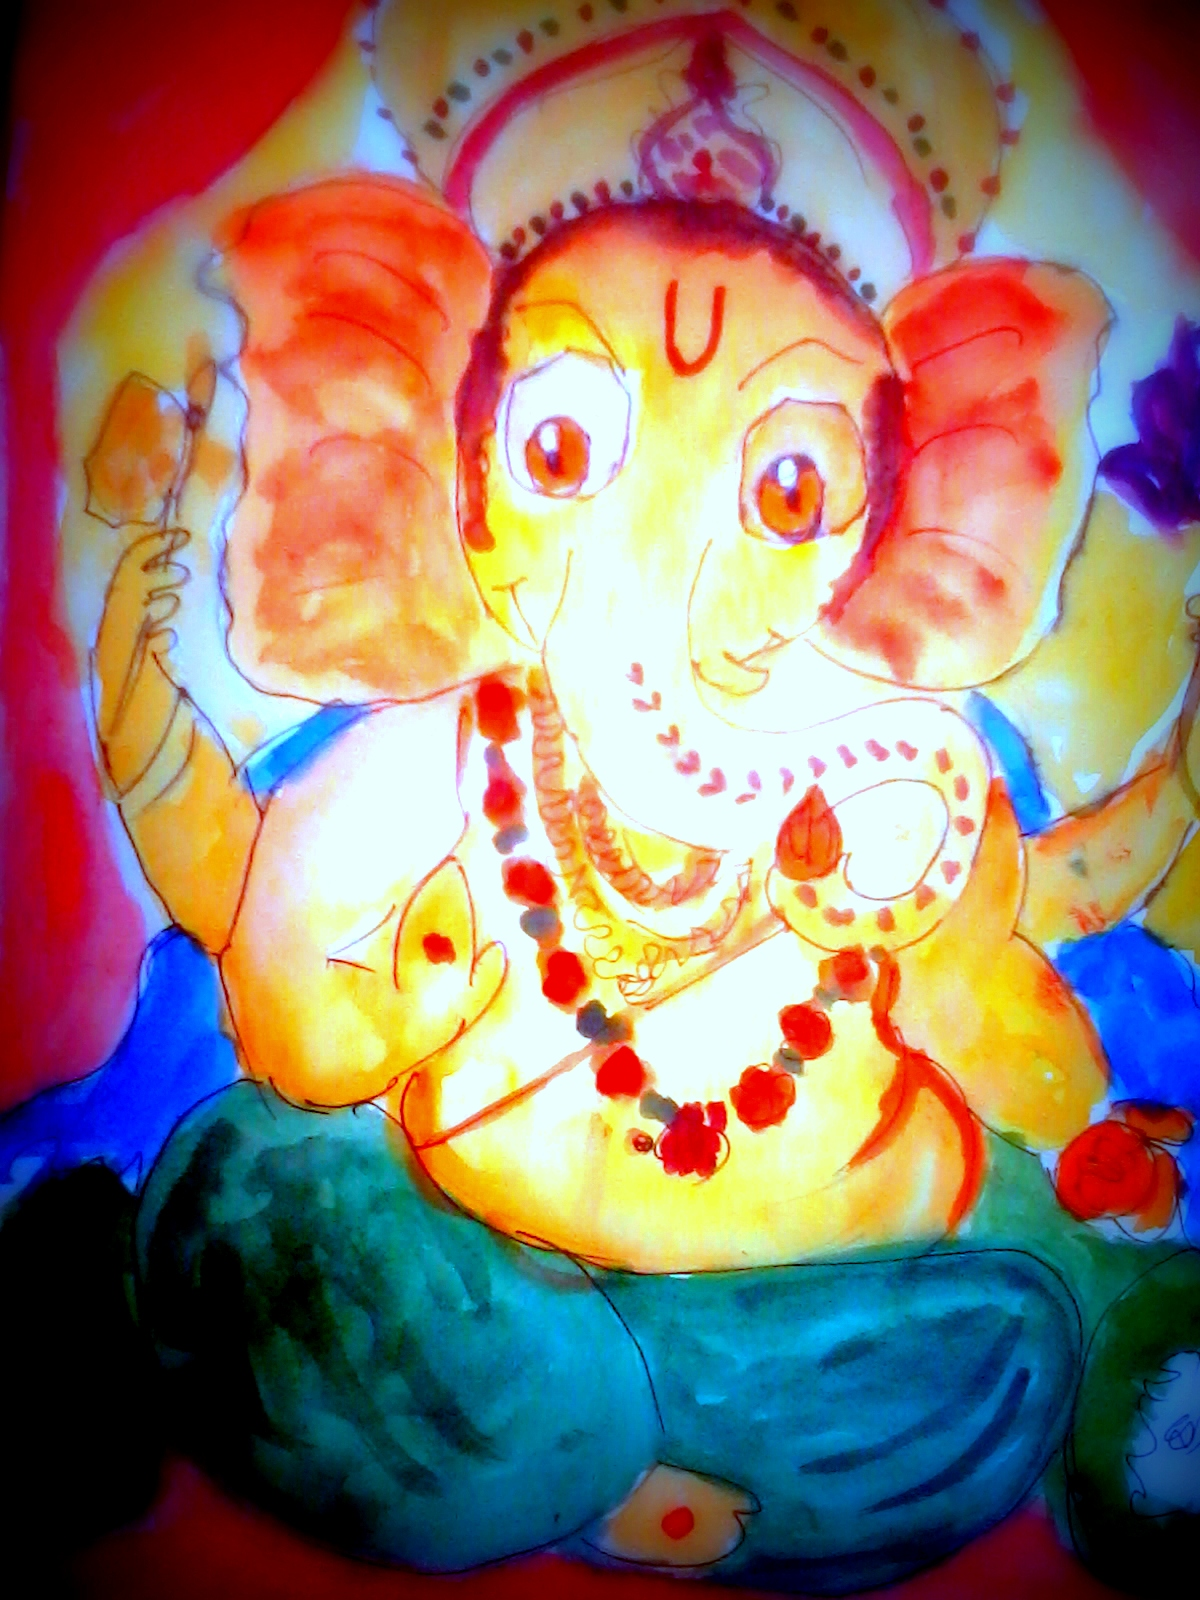 photo Short Essay On Ganesh Chaturthi F estival For Kids In Hindi